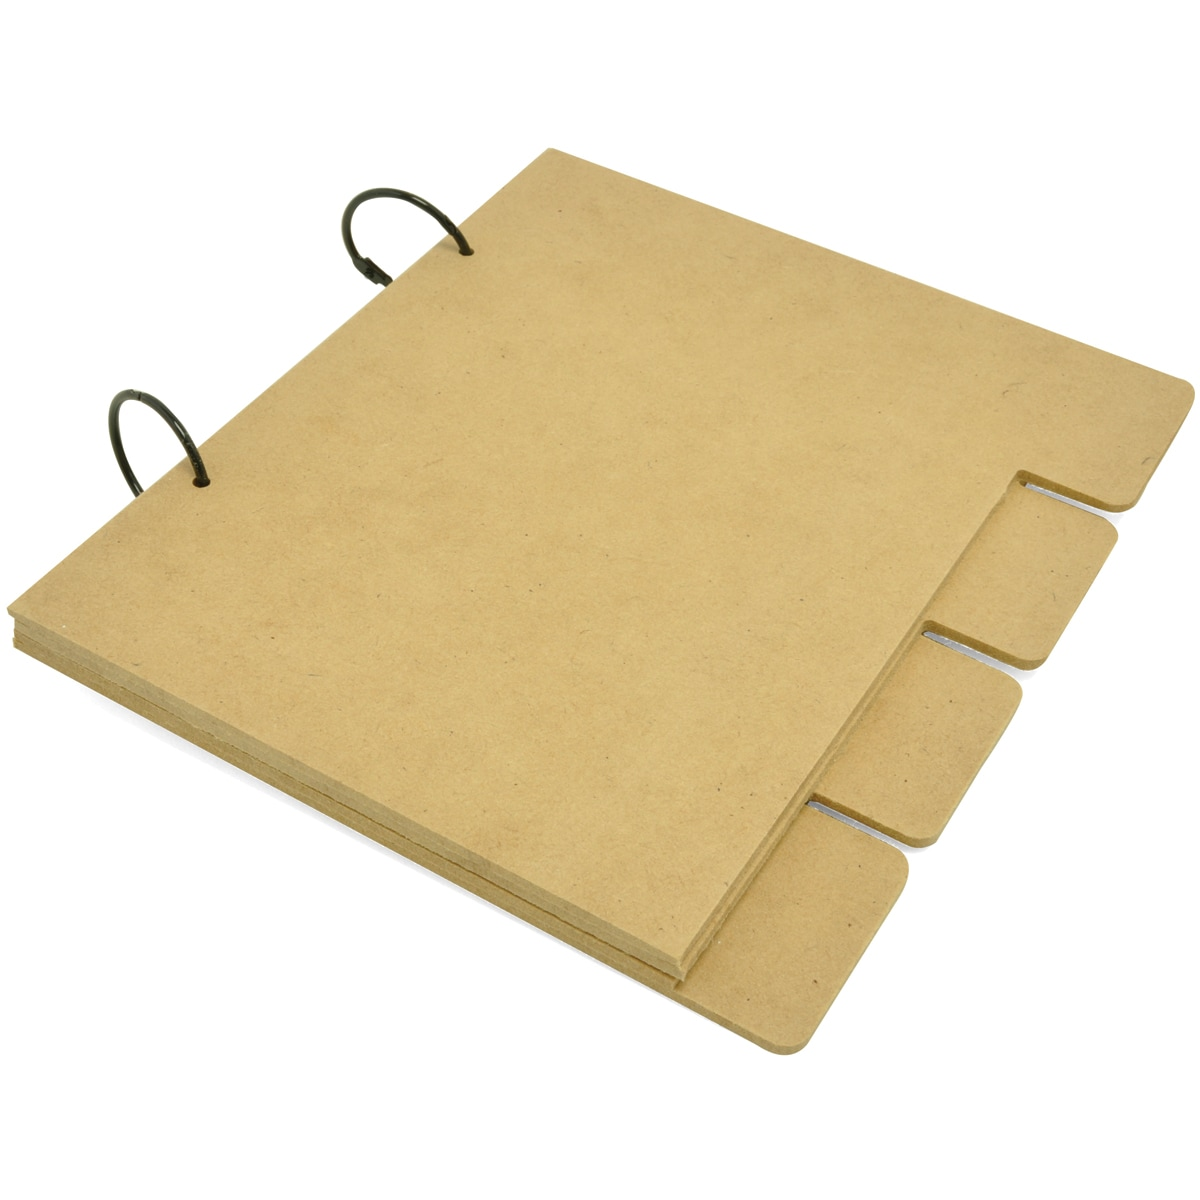 """Beyond The Page MDF Medium Tabbed Album-4 Tabbed MDF Pages 8""""X7""""X.5"""""""